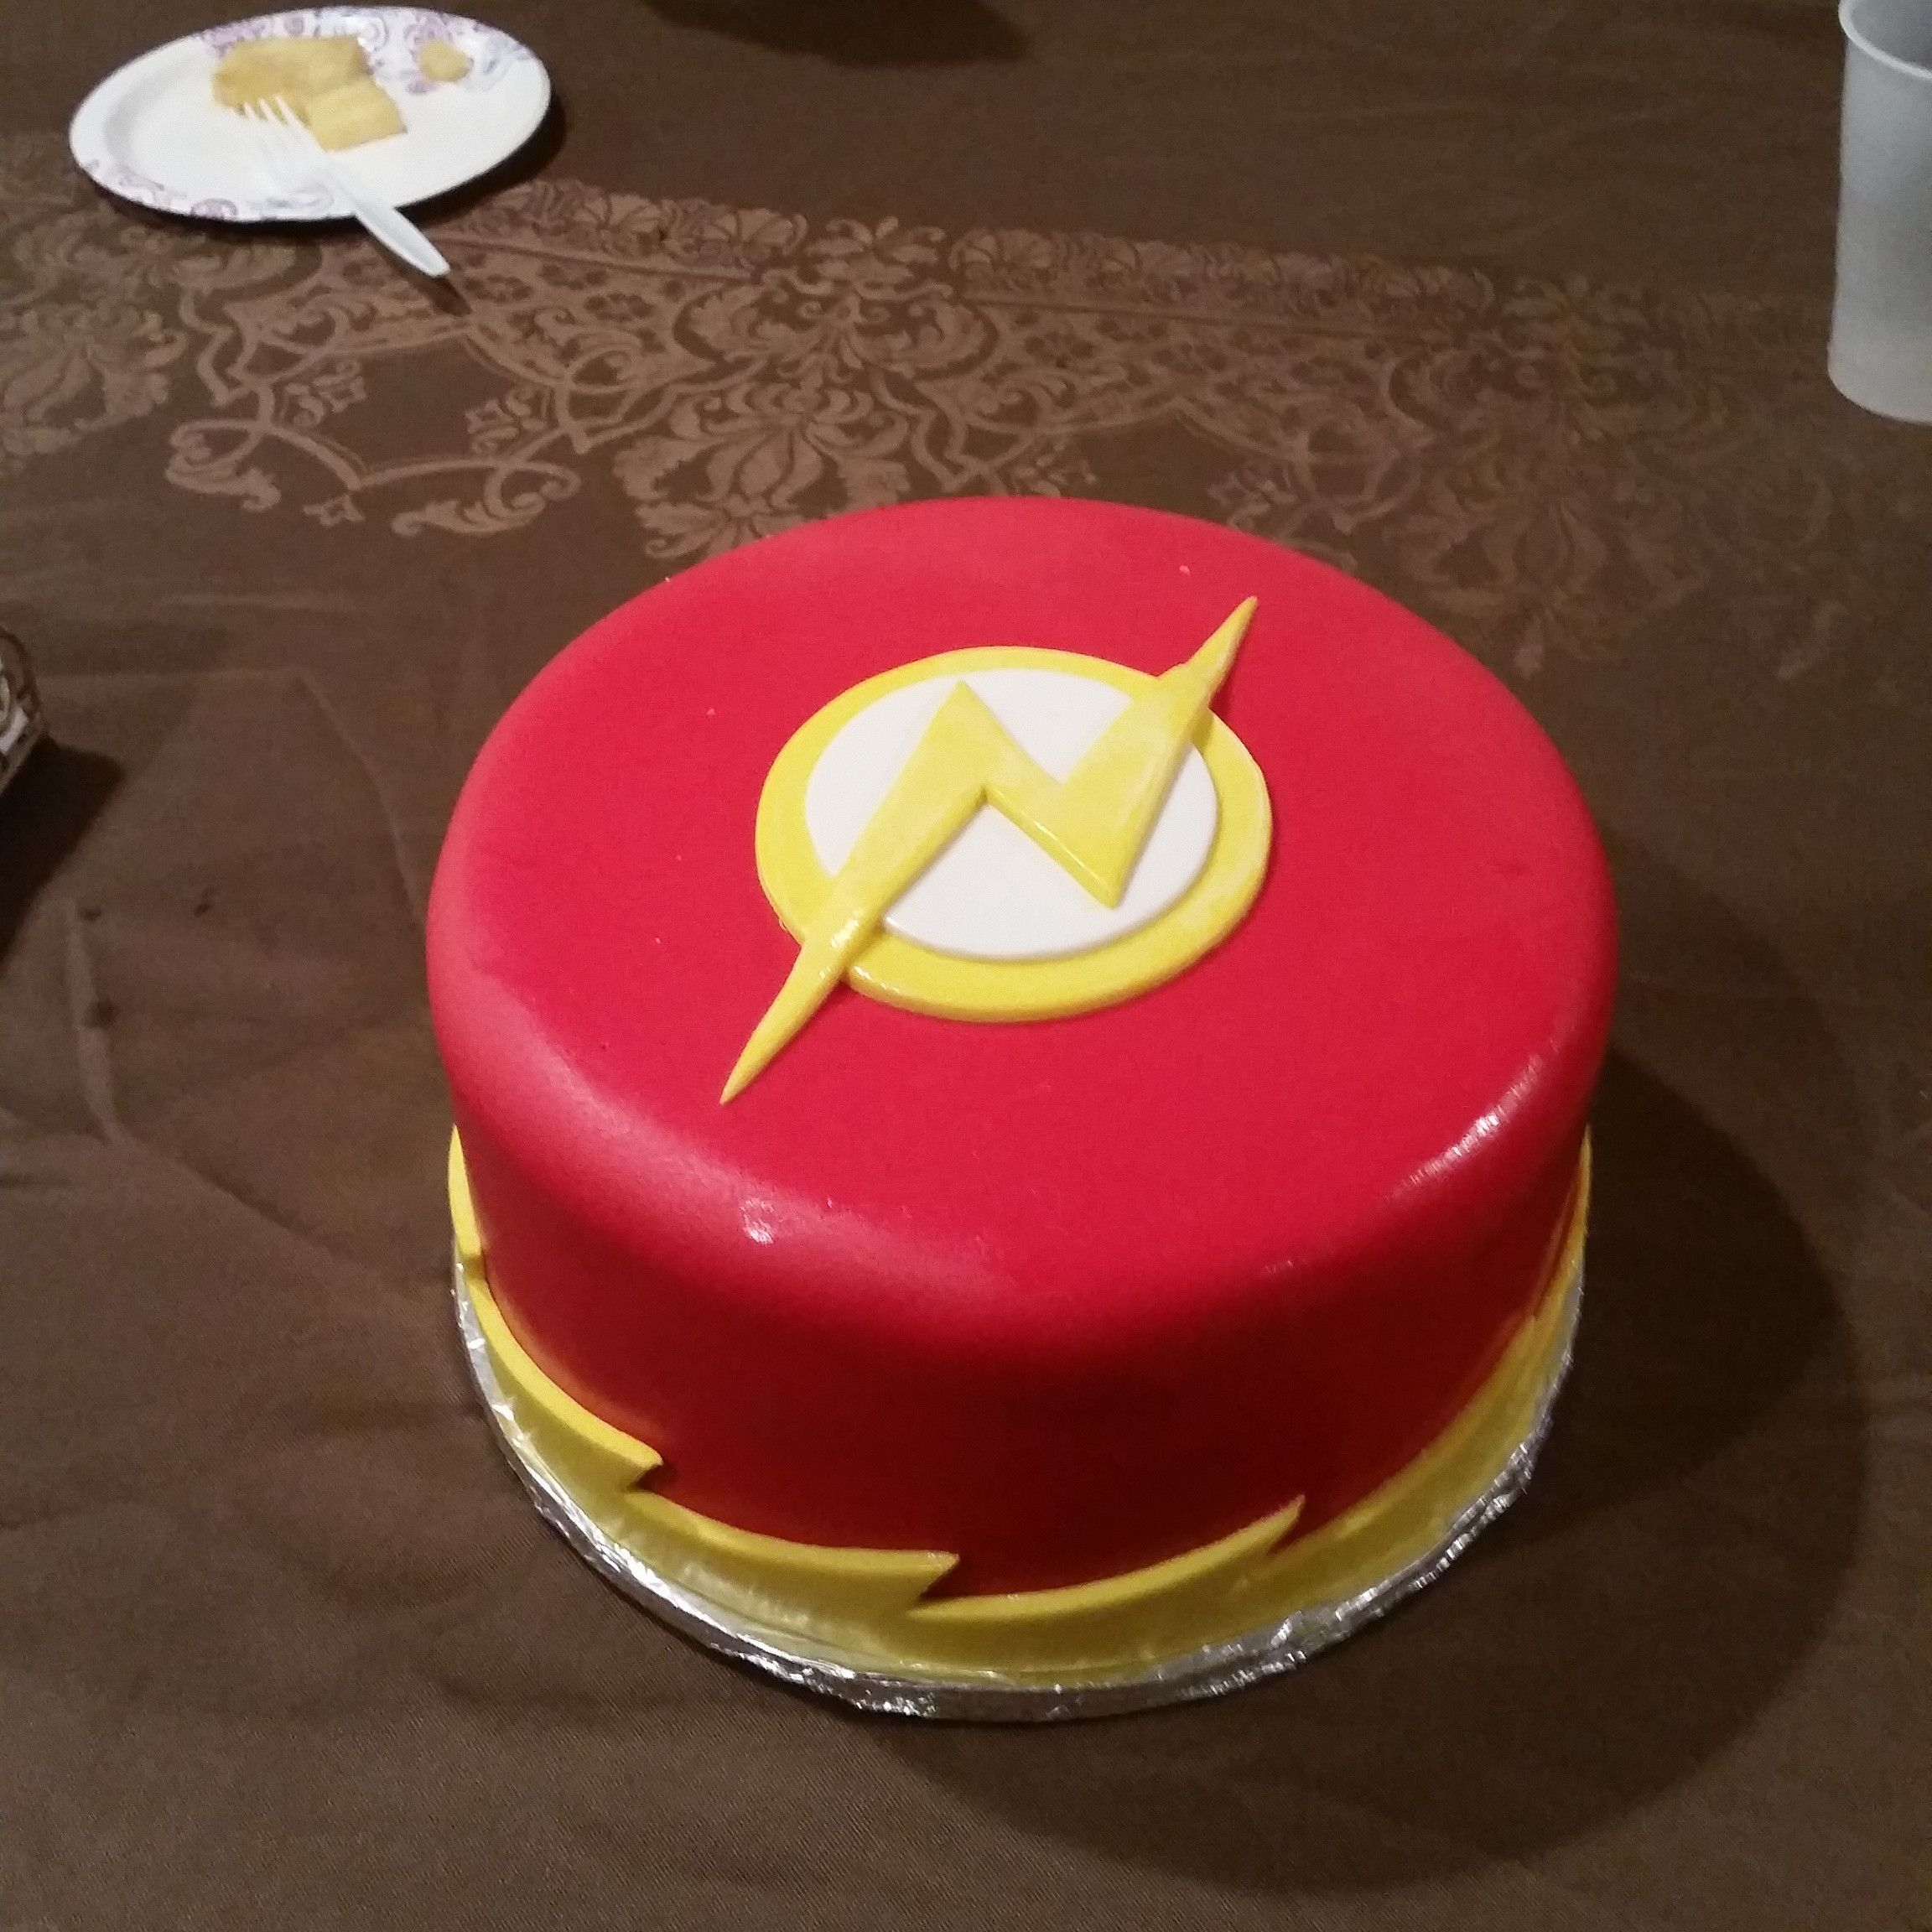 The Flash Cake My Gf Made For My Bday Today In 2018 The Flash